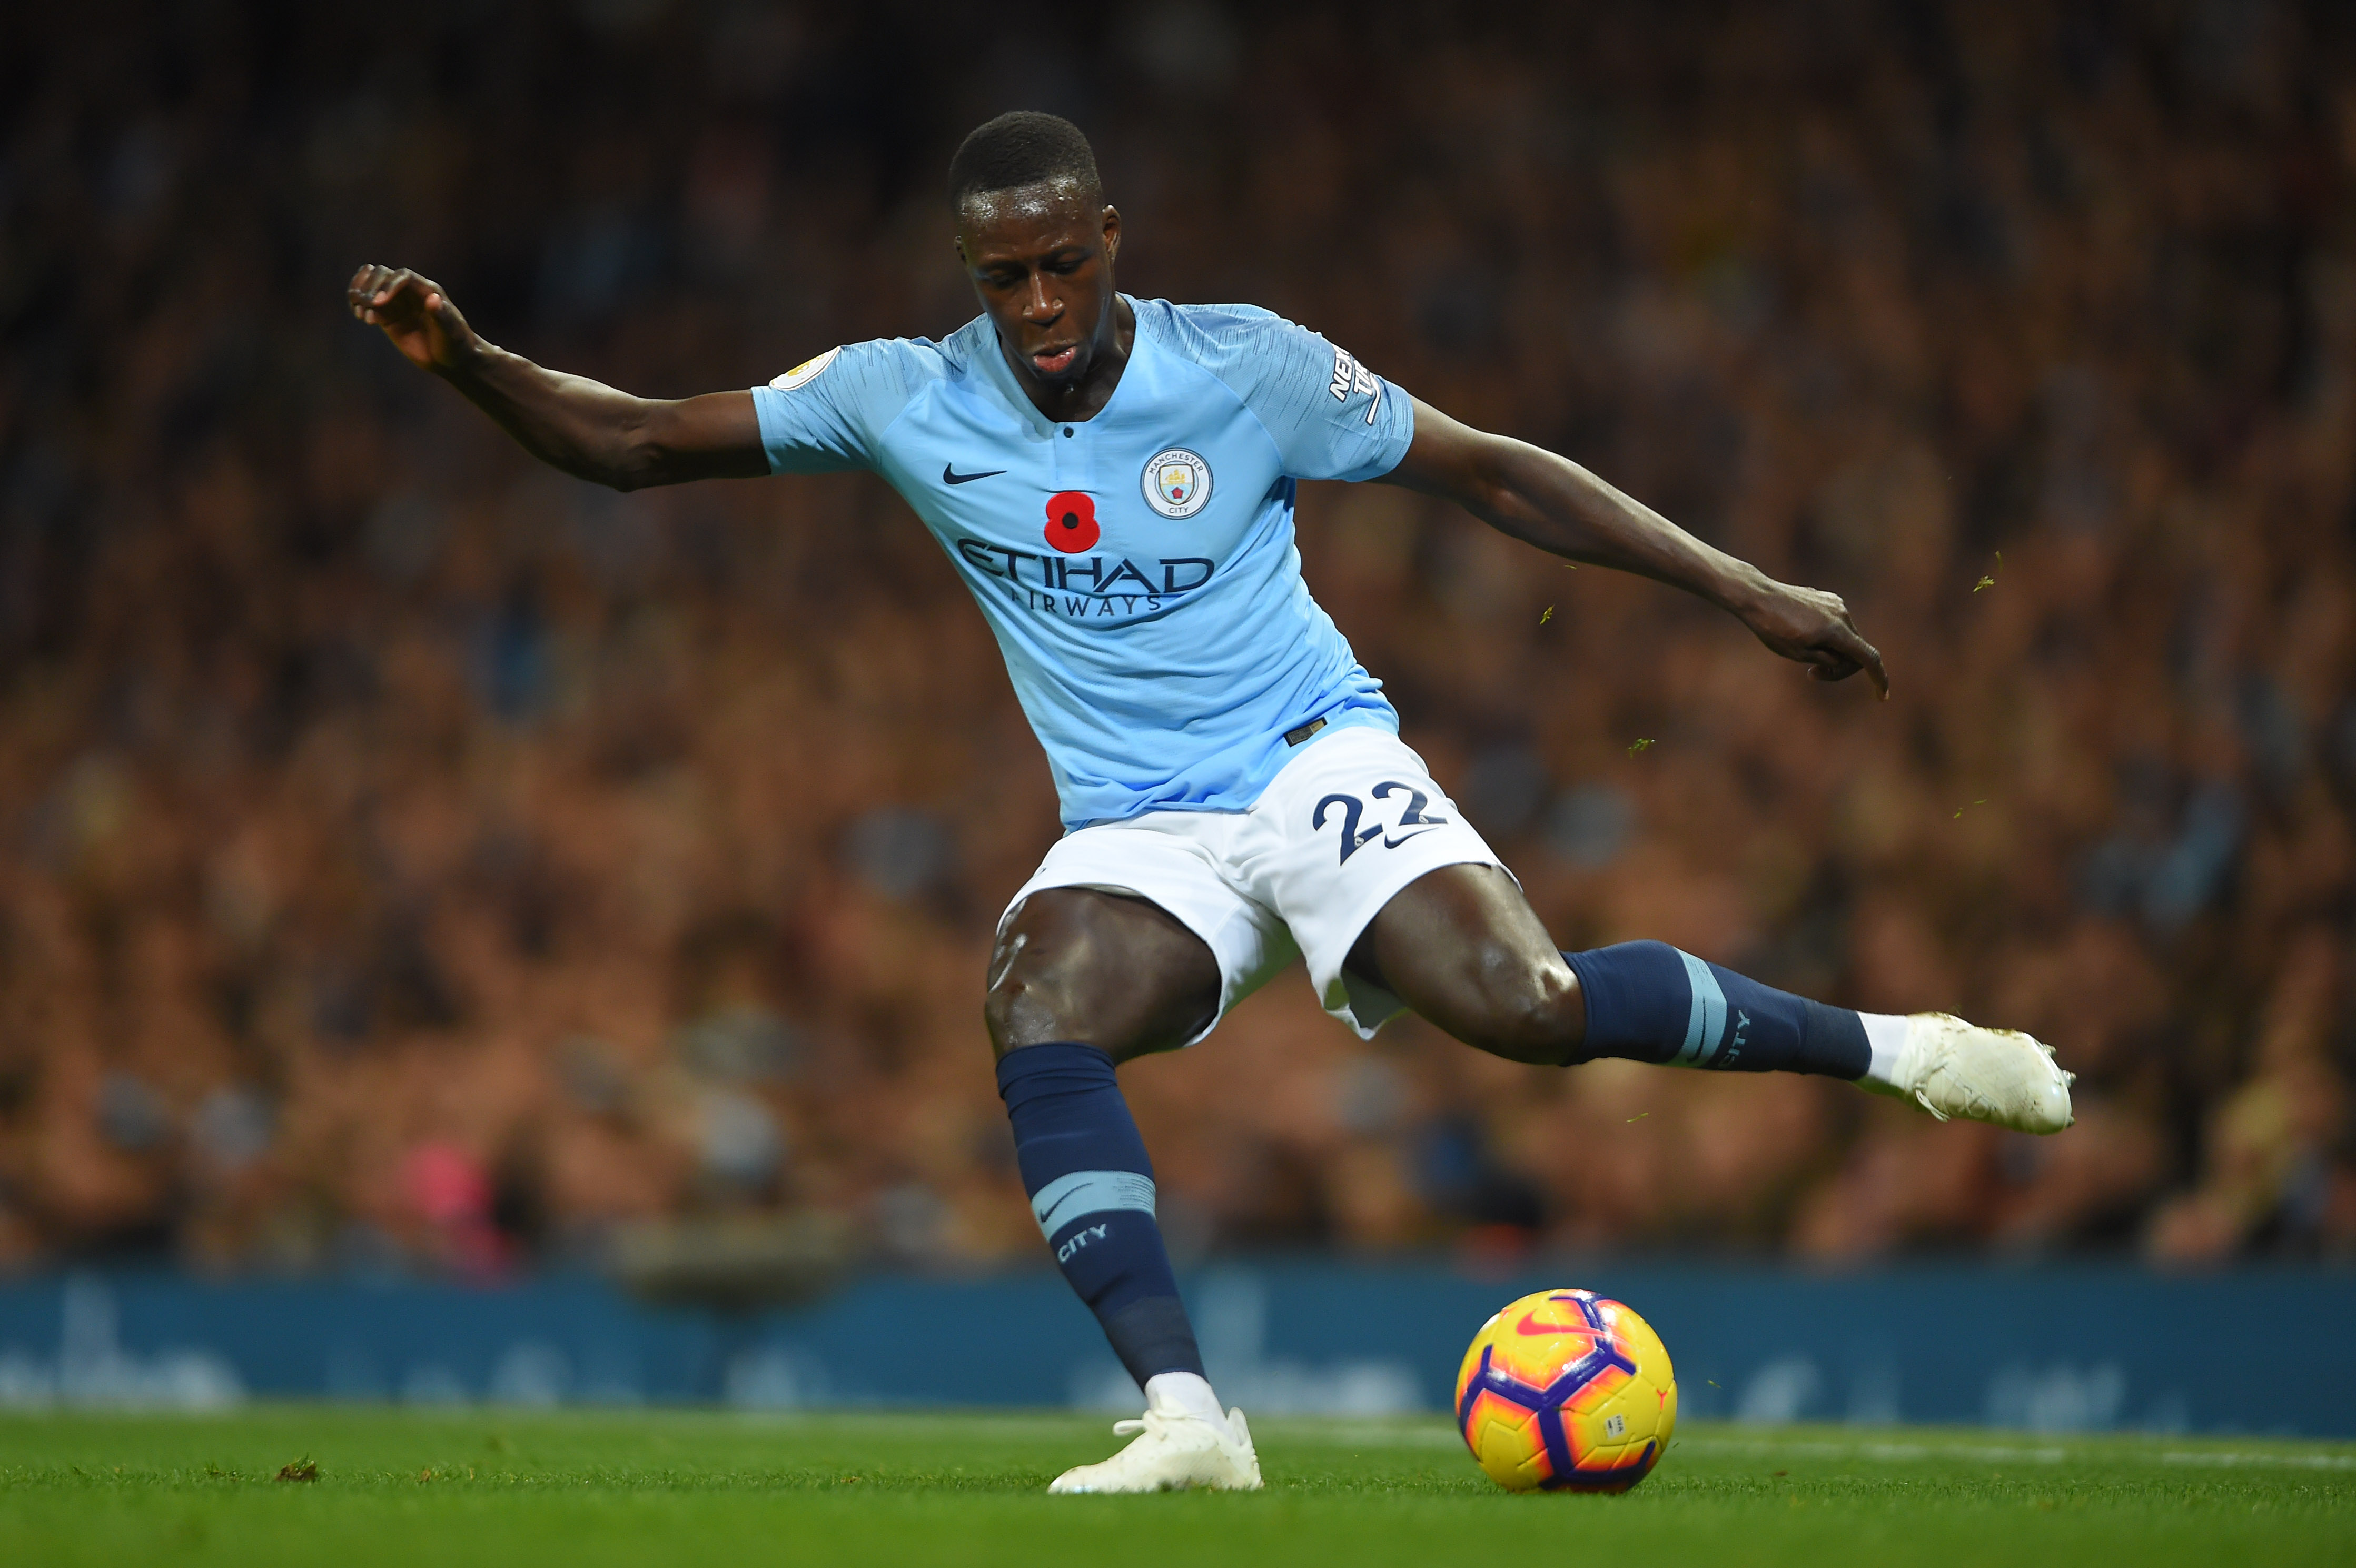 City star's return from injury: A huge boost for the second half of the season